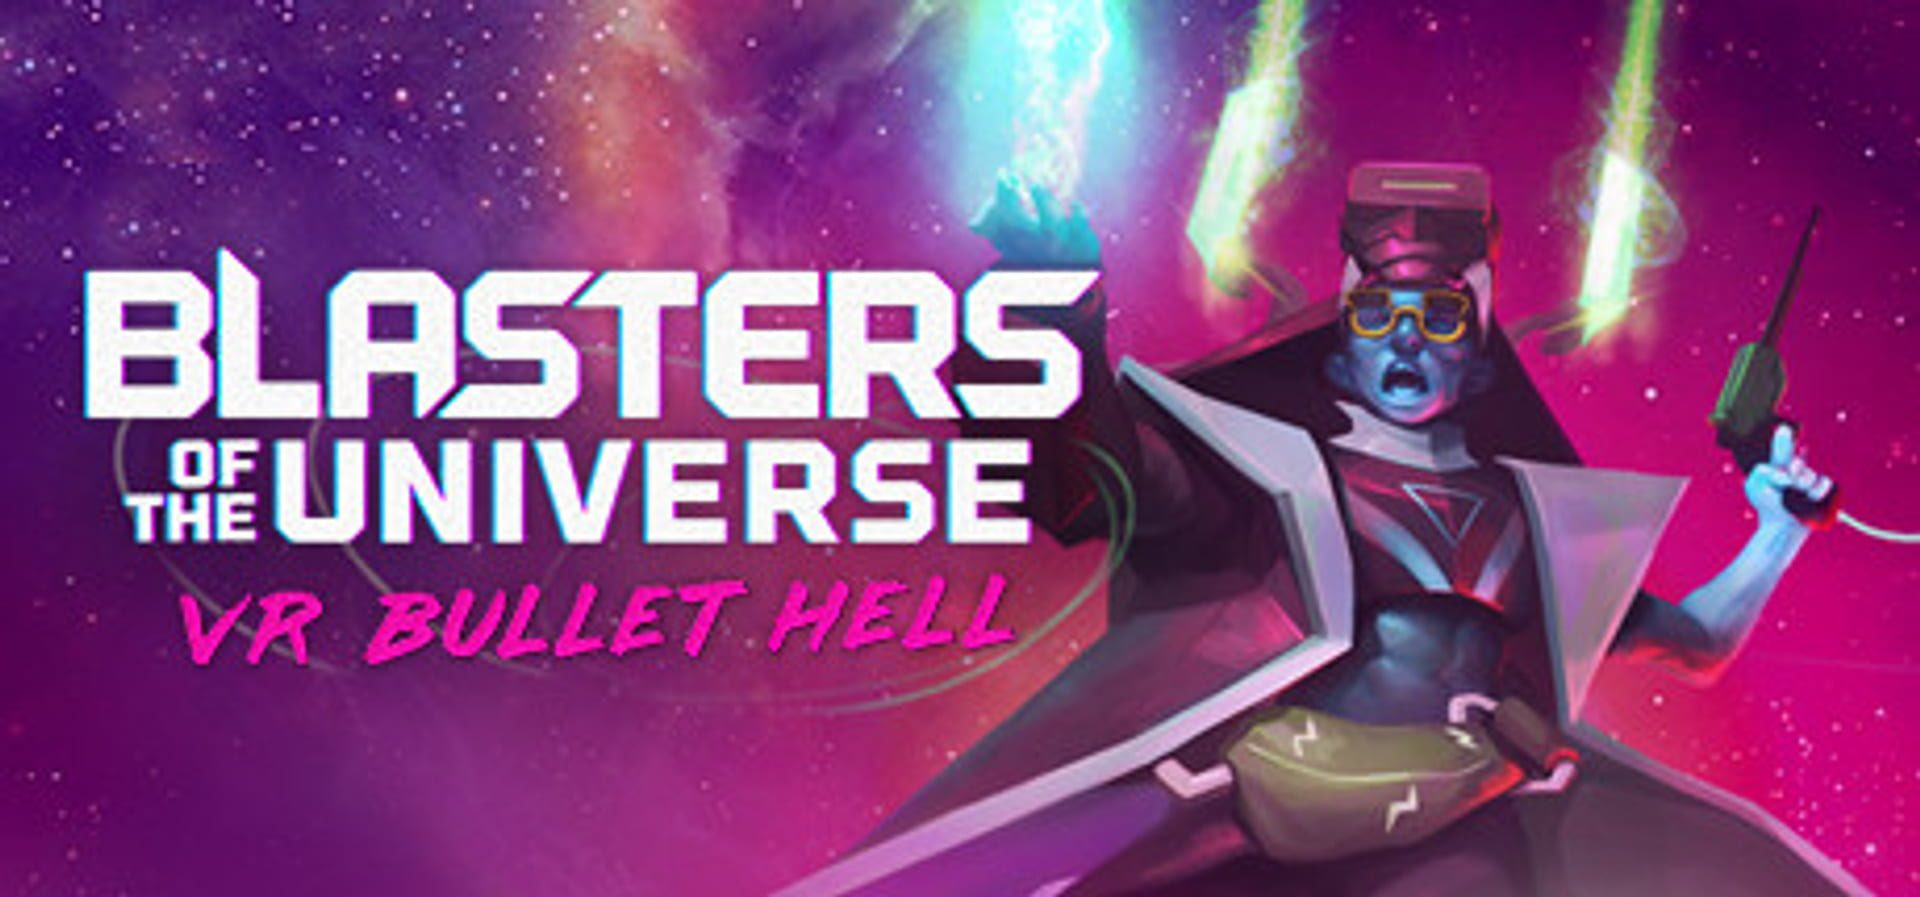 buy Blasters of the Universe cd key for all platform